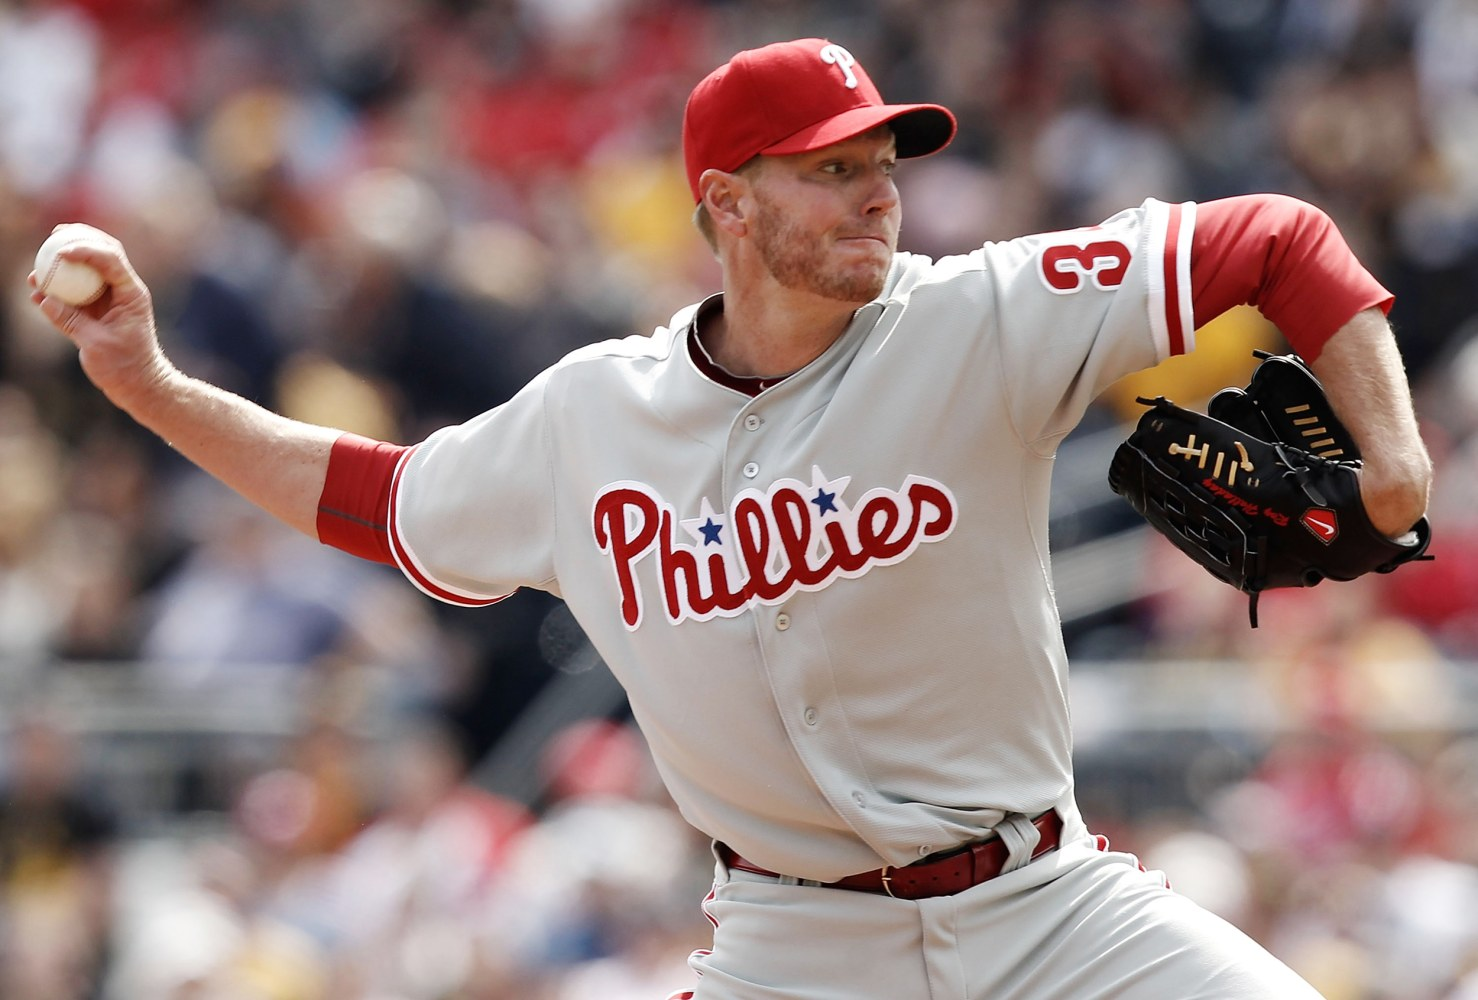 Former MLB player Roy Halladay killed in Pasco plane crash